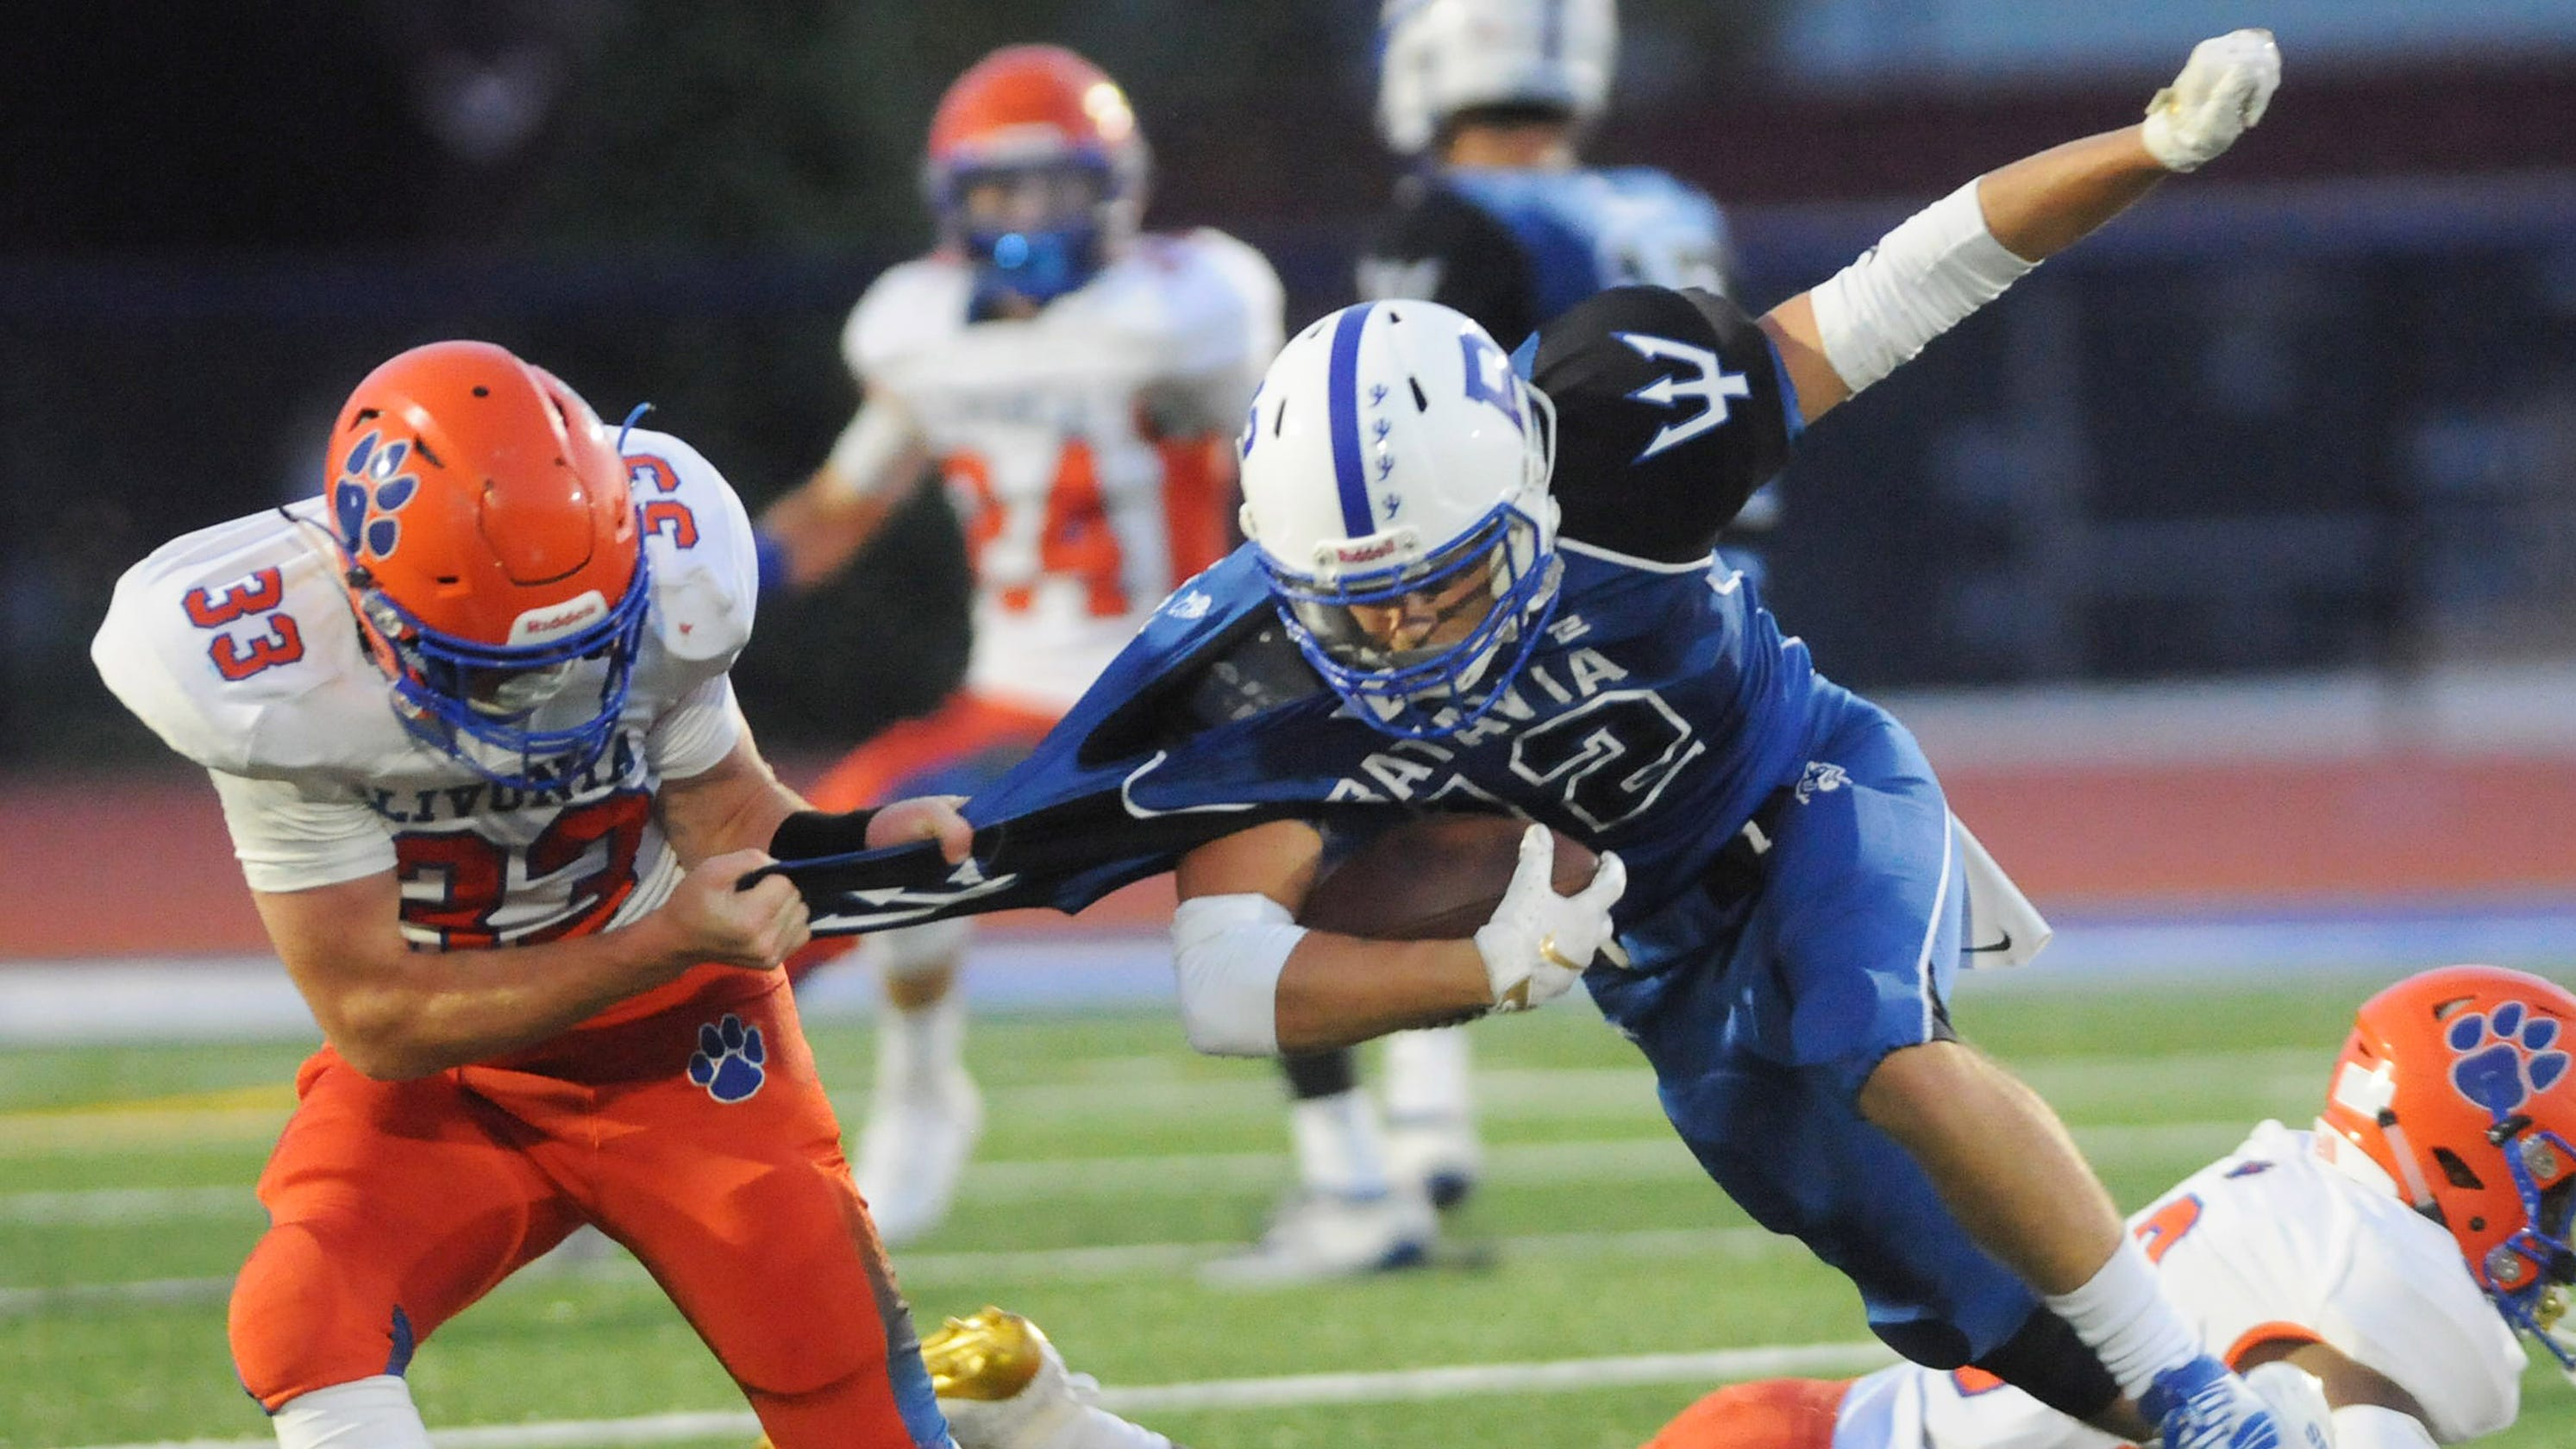 Section V football: Batavia bests Livonia in Class B clash